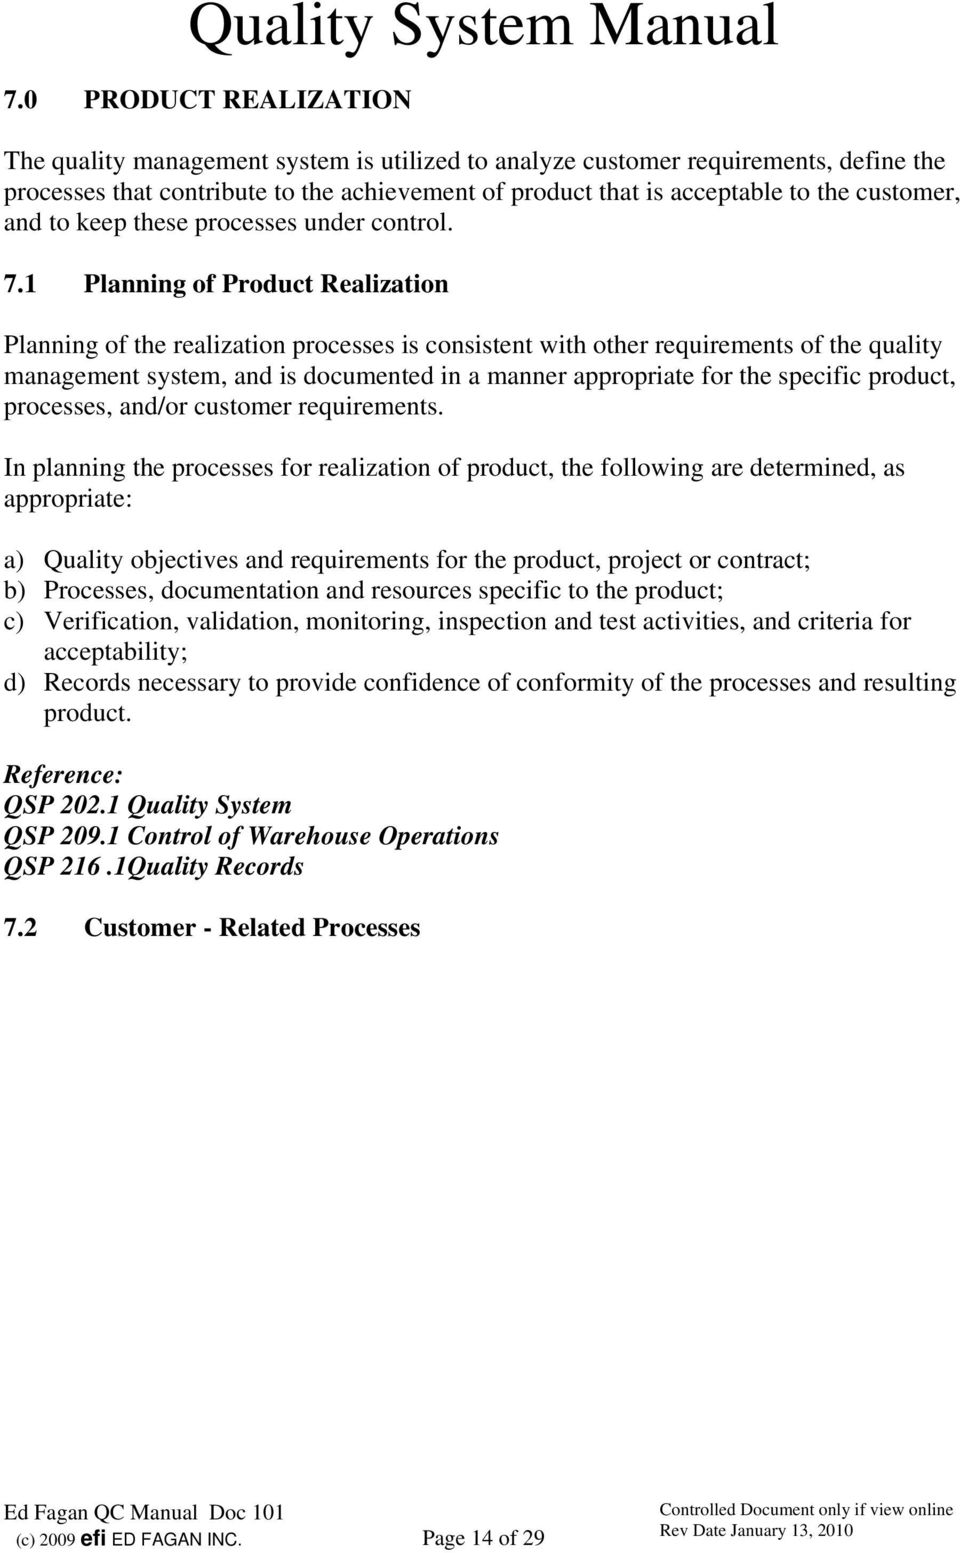 1 Planning of Product Realization Planning of the realization processes is consistent with other requirements of the quality management system, and is documented in a manner appropriate for the